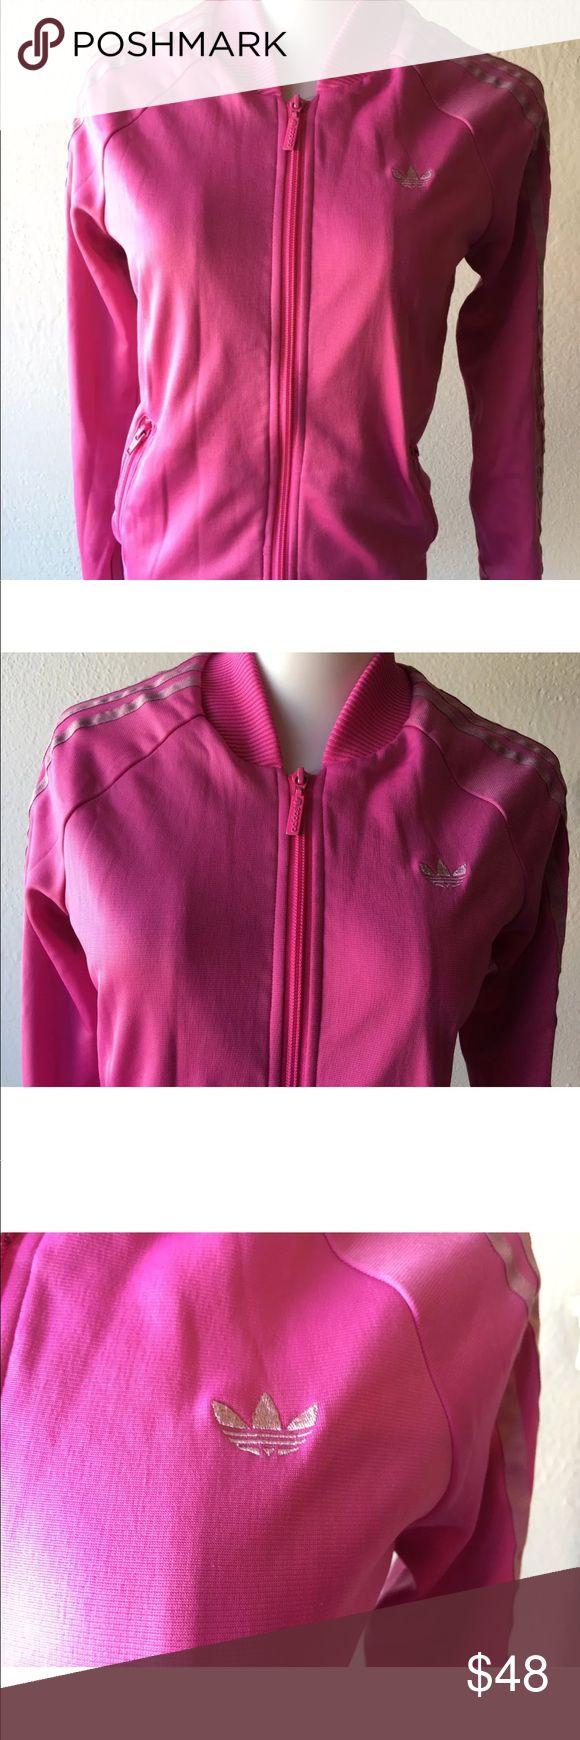 "ADIDAS Women's Supergirl Full Zip Track Jacket Brand: ""ADIDAS""  Color: Intense Pink Size: Women's Small Style: Zip up track jacket Feature 3 stripes down sleeves Condition brand new without tags  Stored and shipped from our smoke and pet free home Adidas Jackets & Coats"